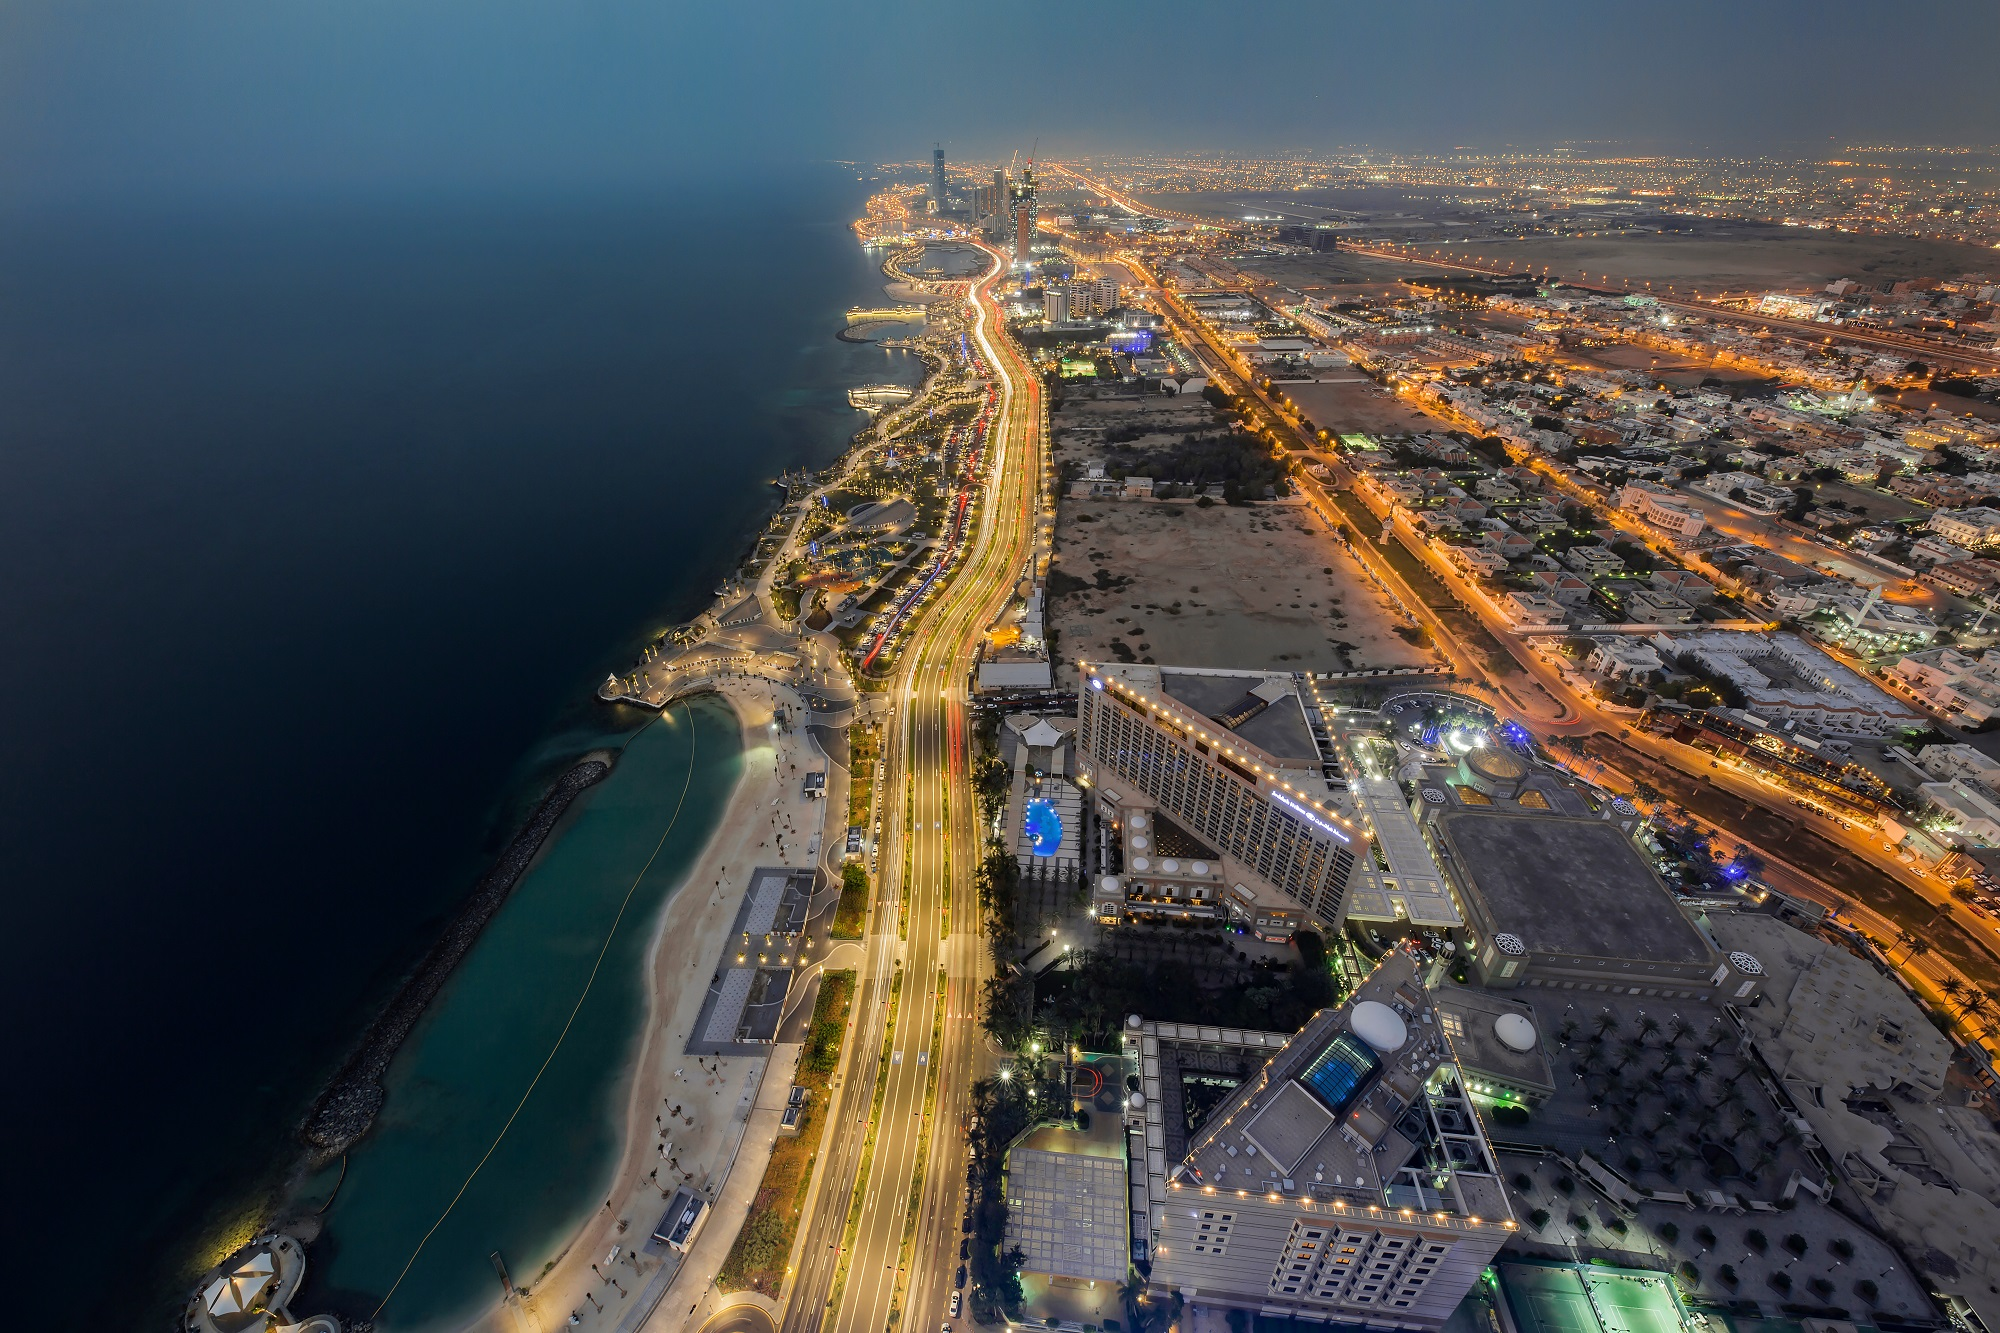 Mortgage market in Saudi Arabia showing signs of recovery